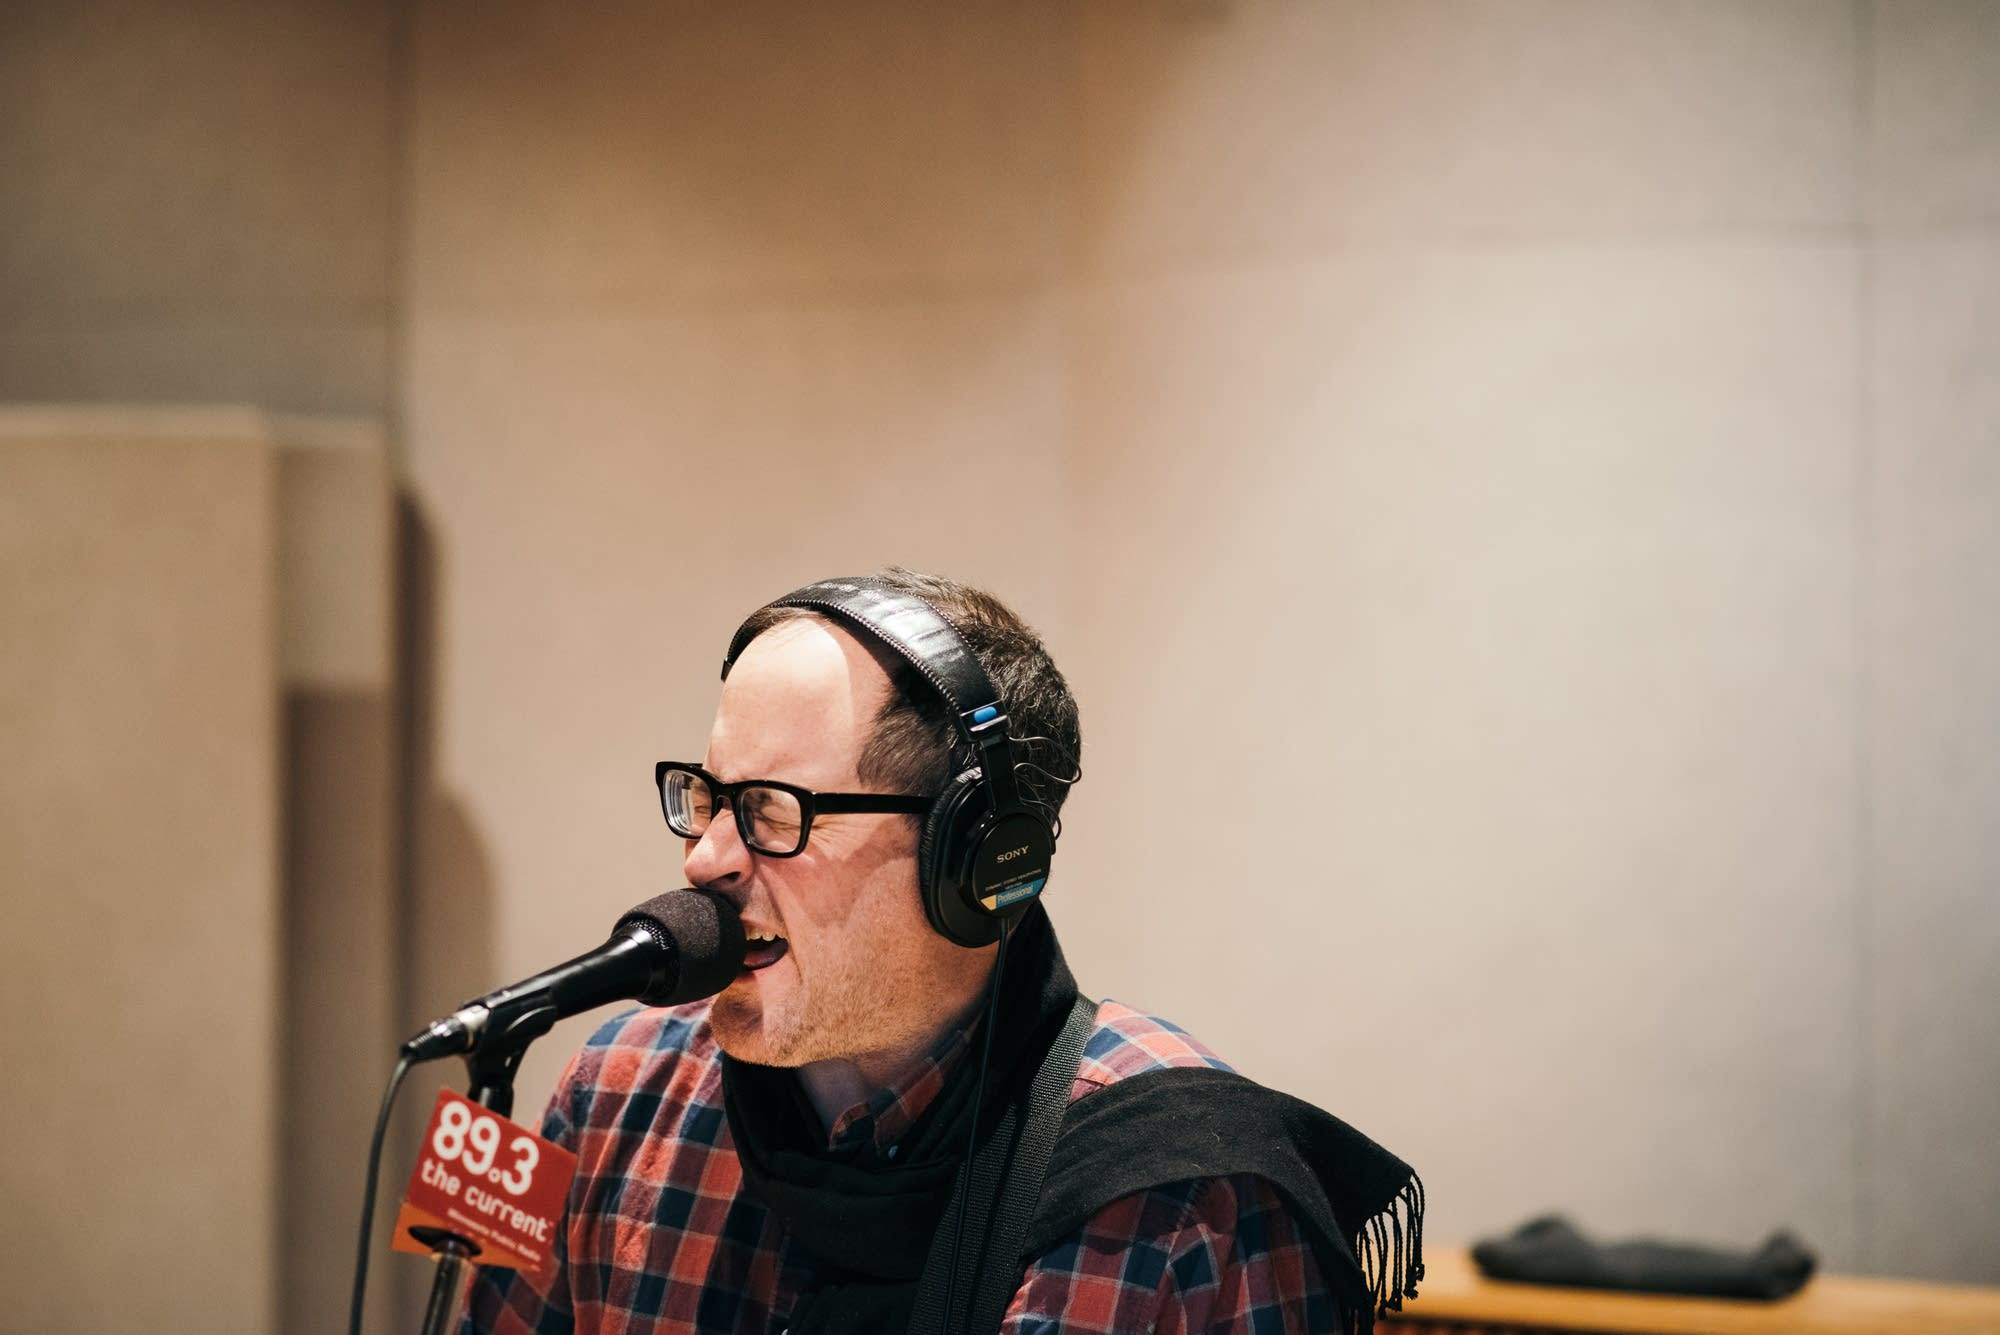 Craig Finn performs in The Current studio